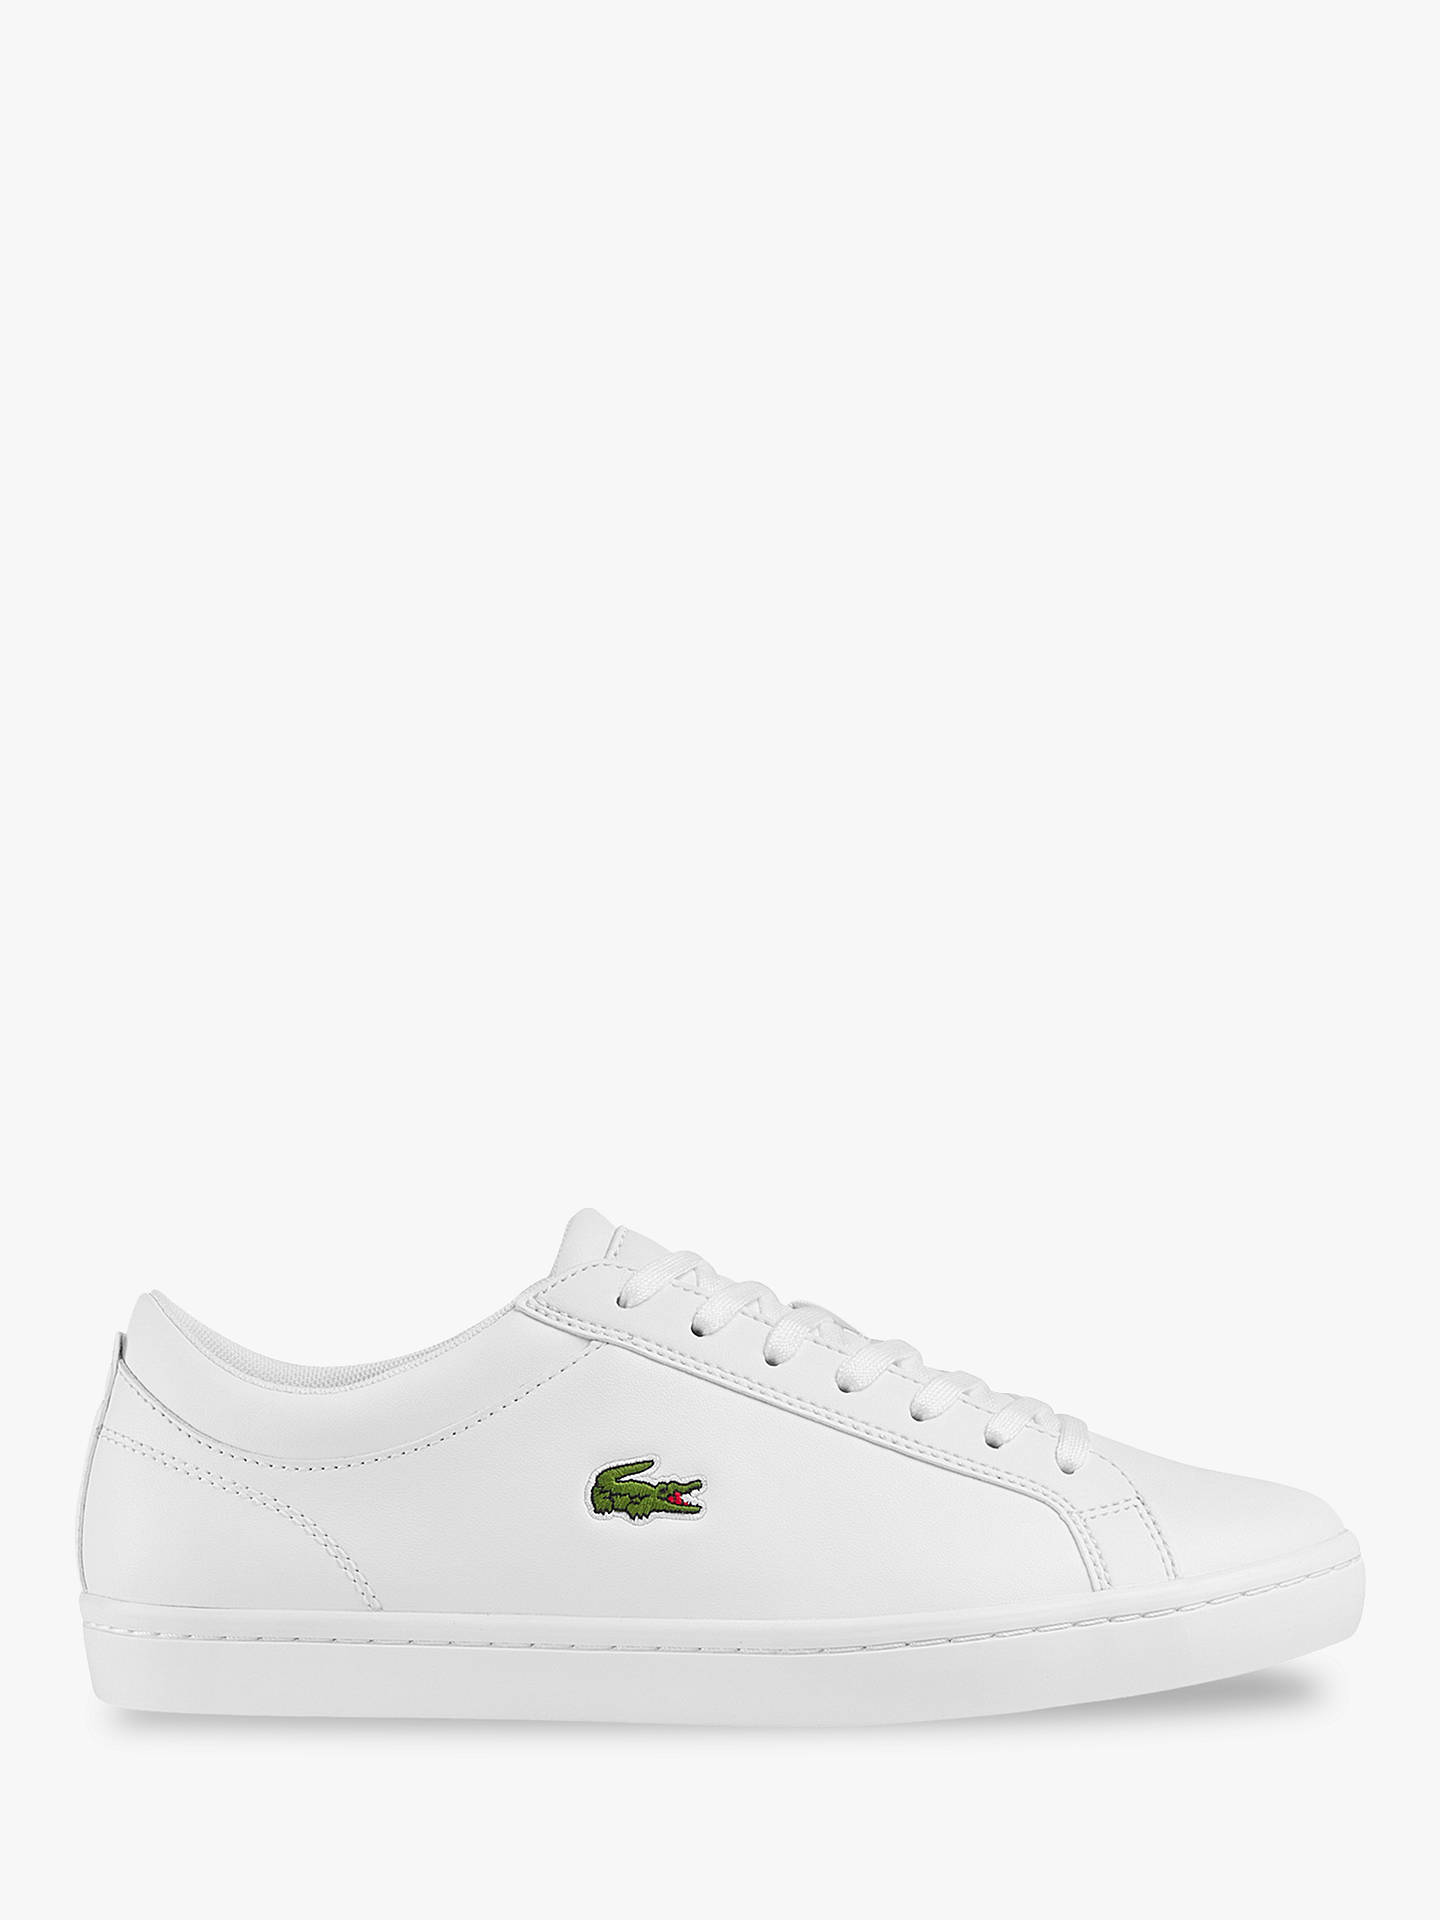 9c435589a77ddd Buy Lacoste Straightset Trainers